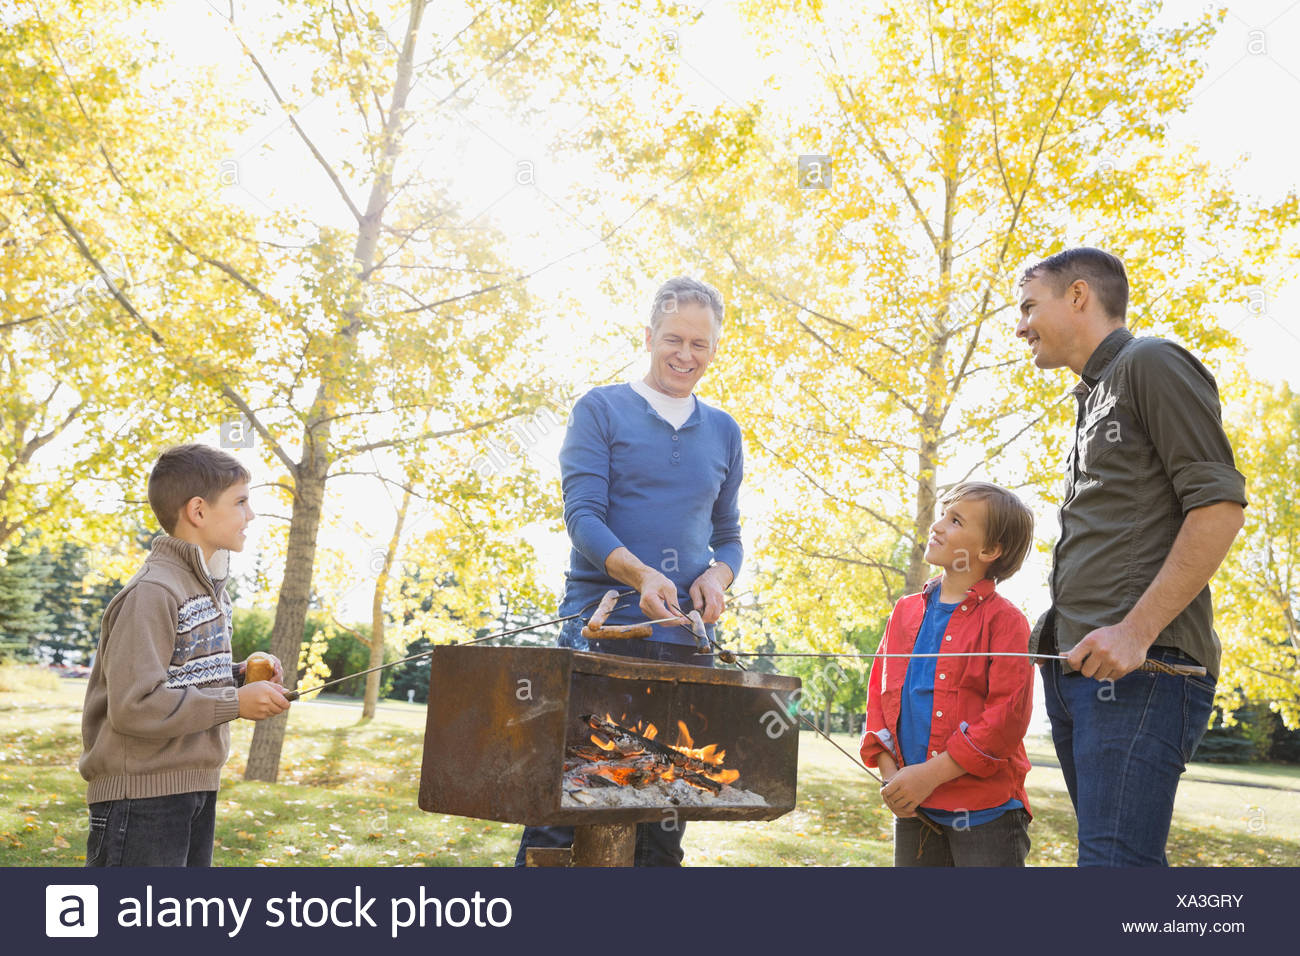 Male family members cooking hot dogs in park - Stock Image